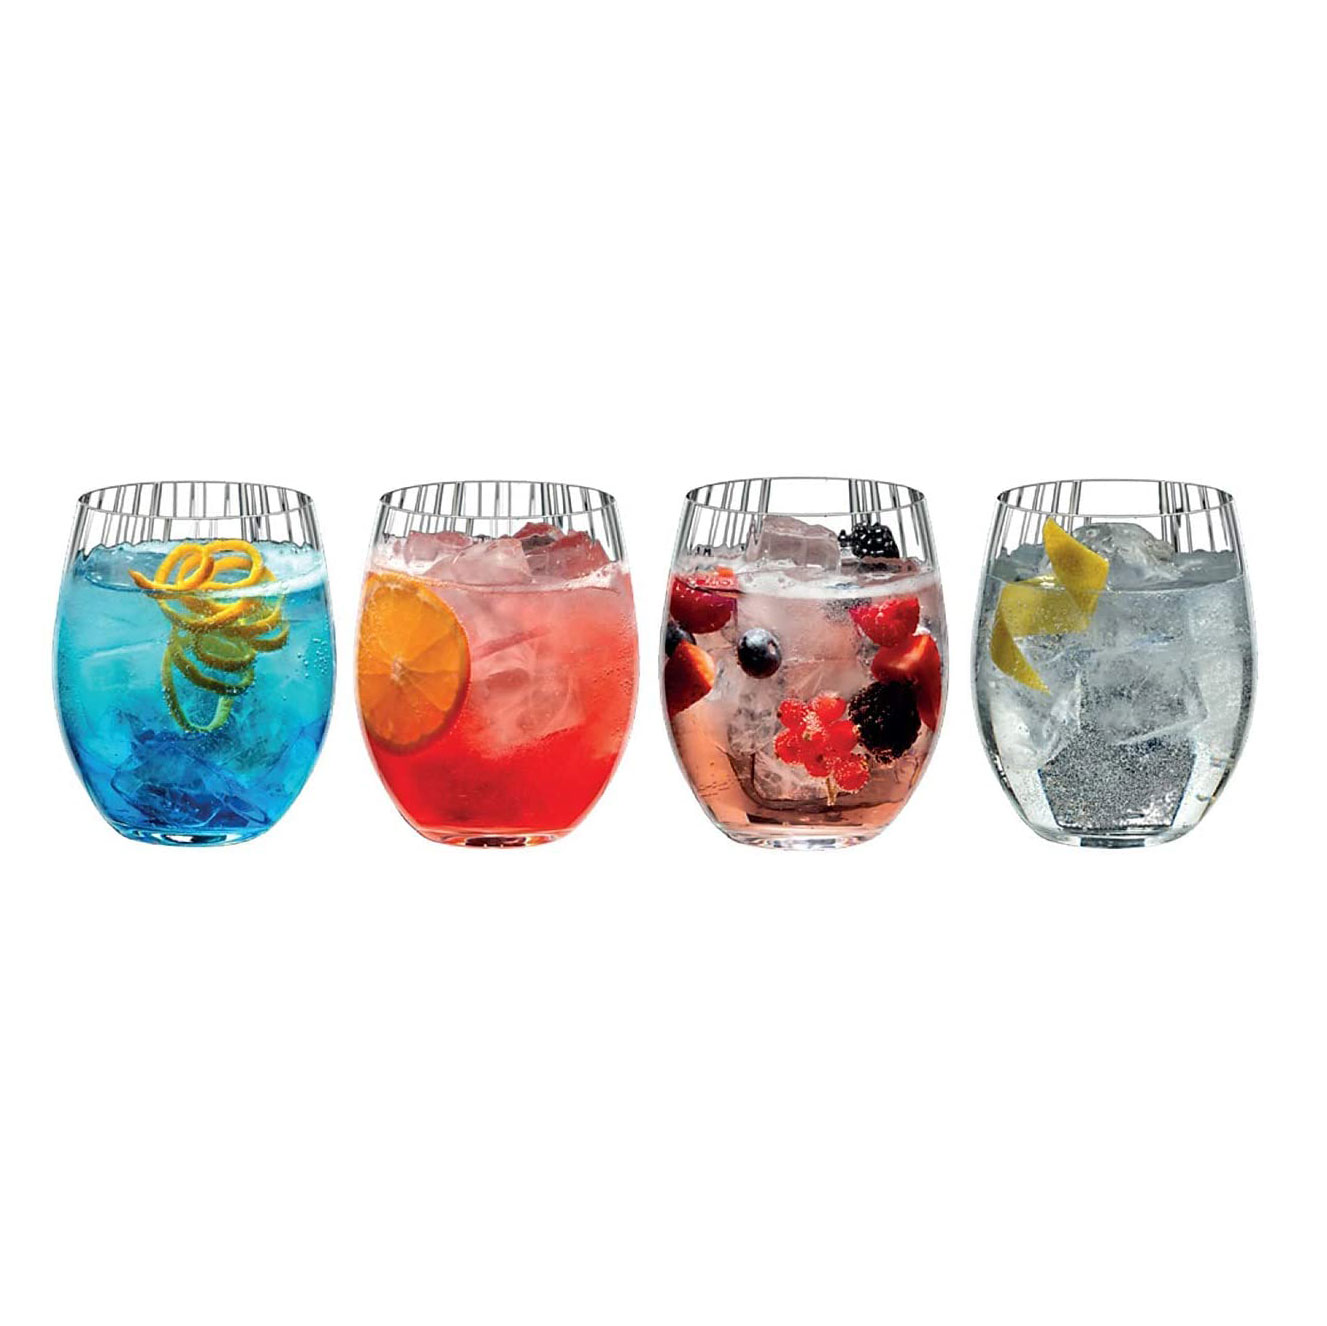 Riedel Tumbler Collection Mixing Series Tonic Cocktail Set Set Of 4 Glasses Walmart Com Walmart Com